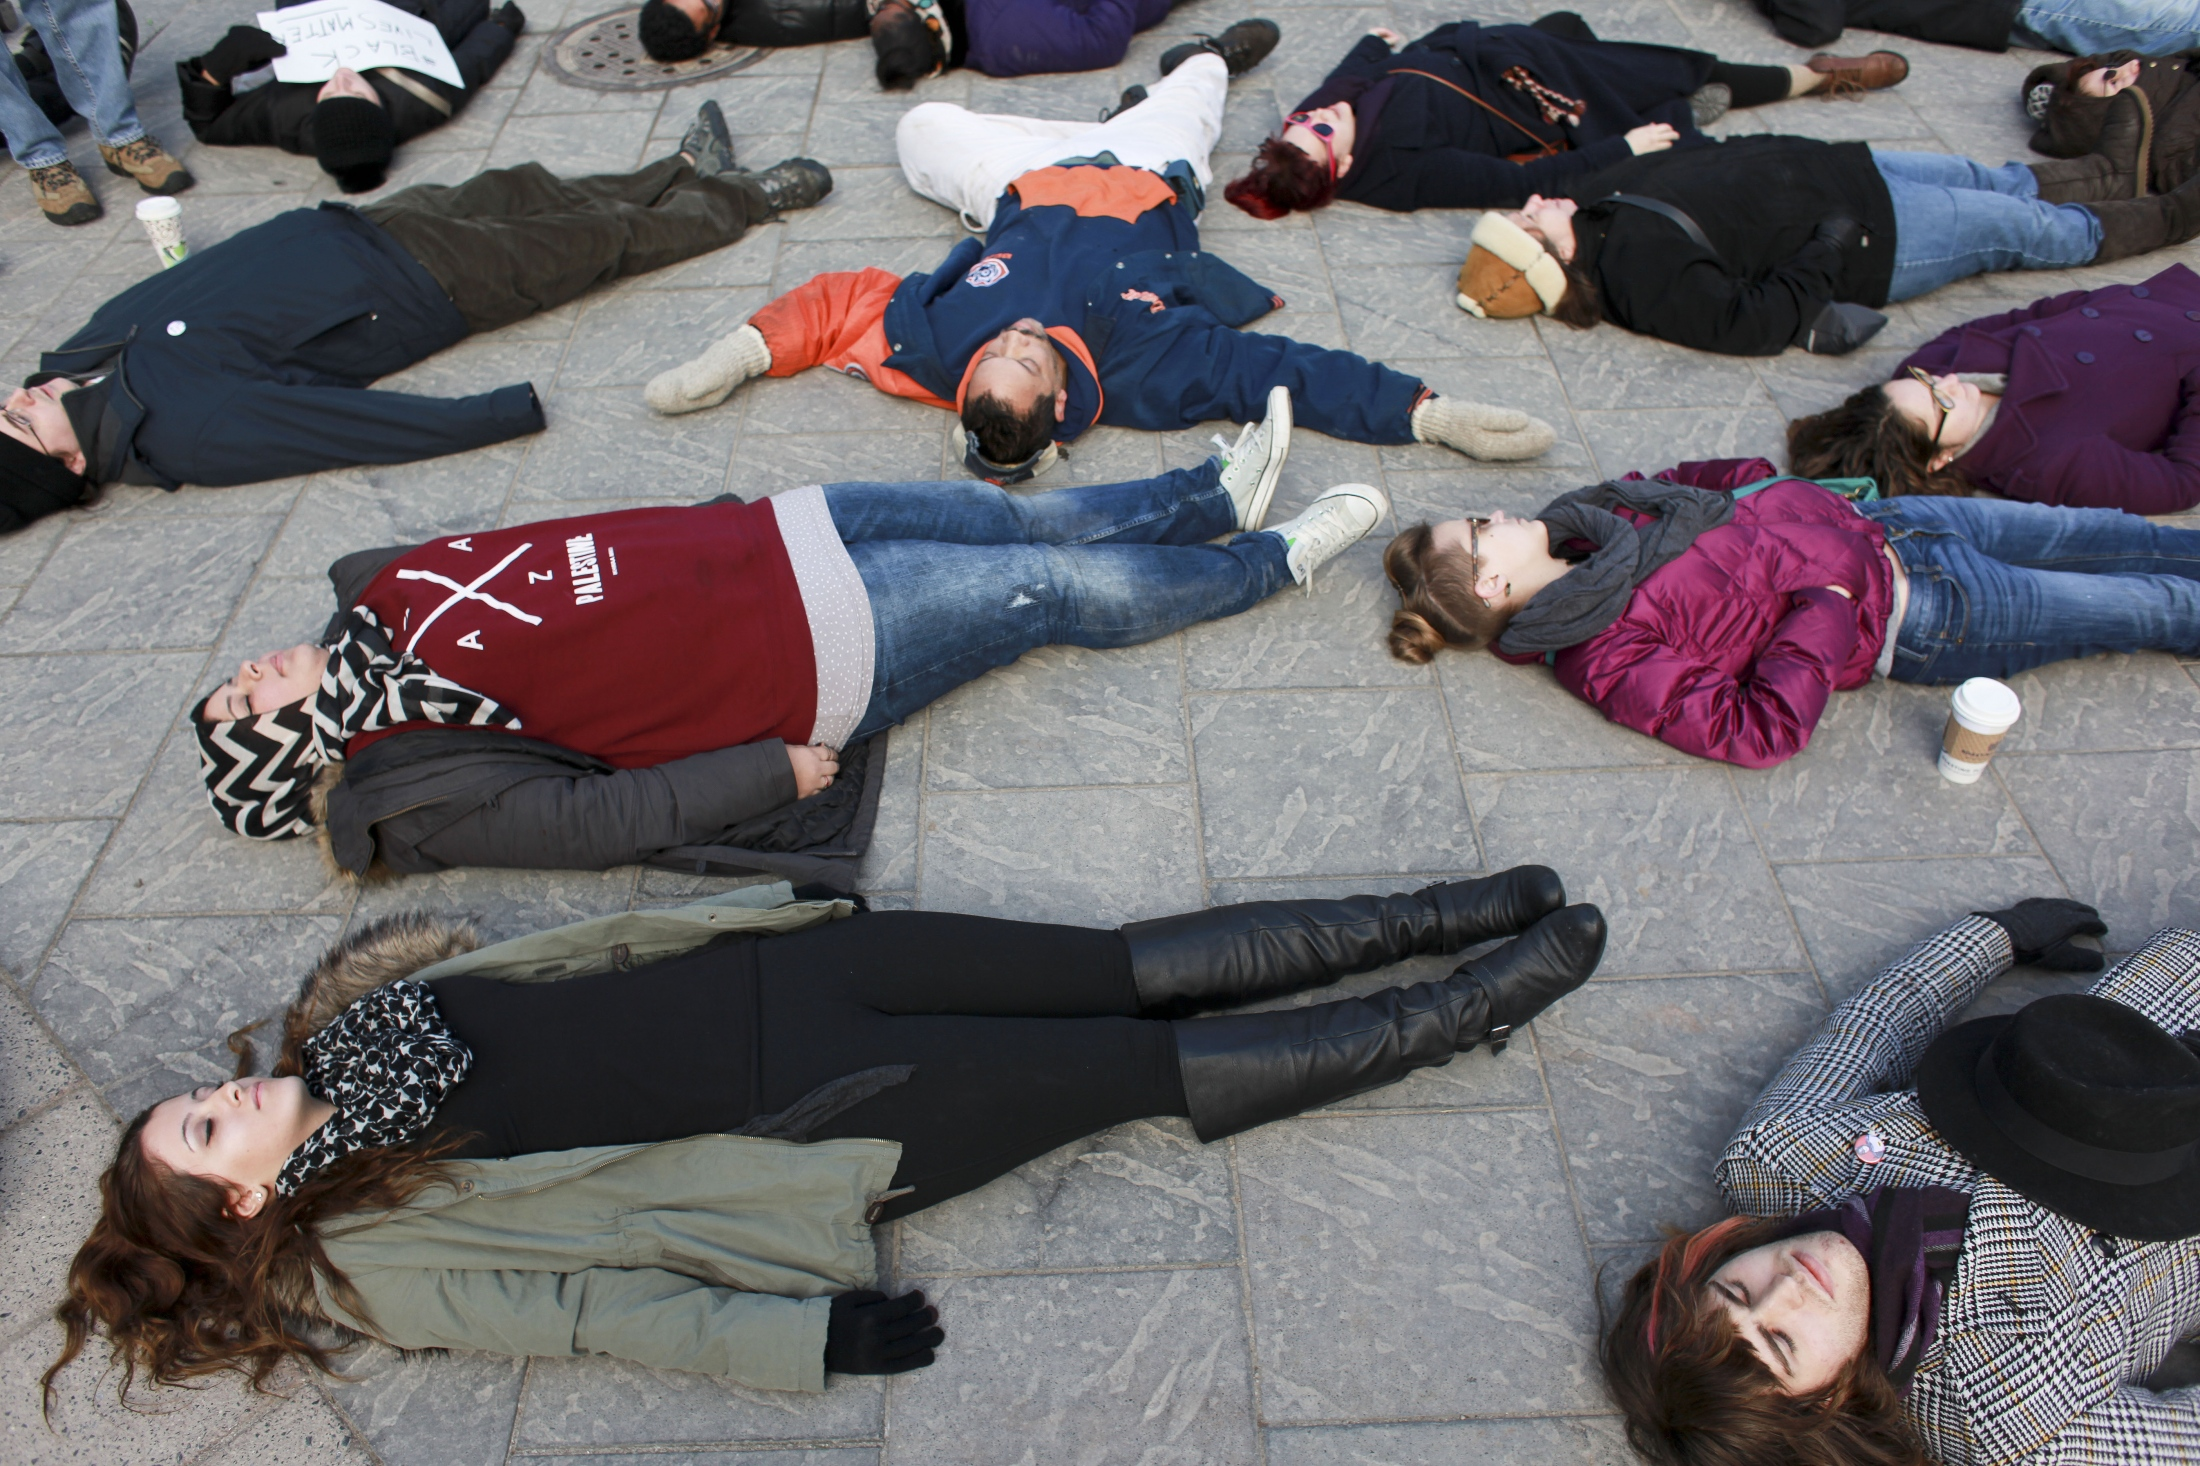 Protestors stage a 'die-in' on Thursday afternoon on December 4, 2014 at Campus Martius park in downtown Detroit in a rally over the non-indictment of Eric Garner, a black New York man who died during a police arrest. Protests continue after last week's non-indictment of a Ferguson police officer. (Elaine Cromie | MLive Detroit)